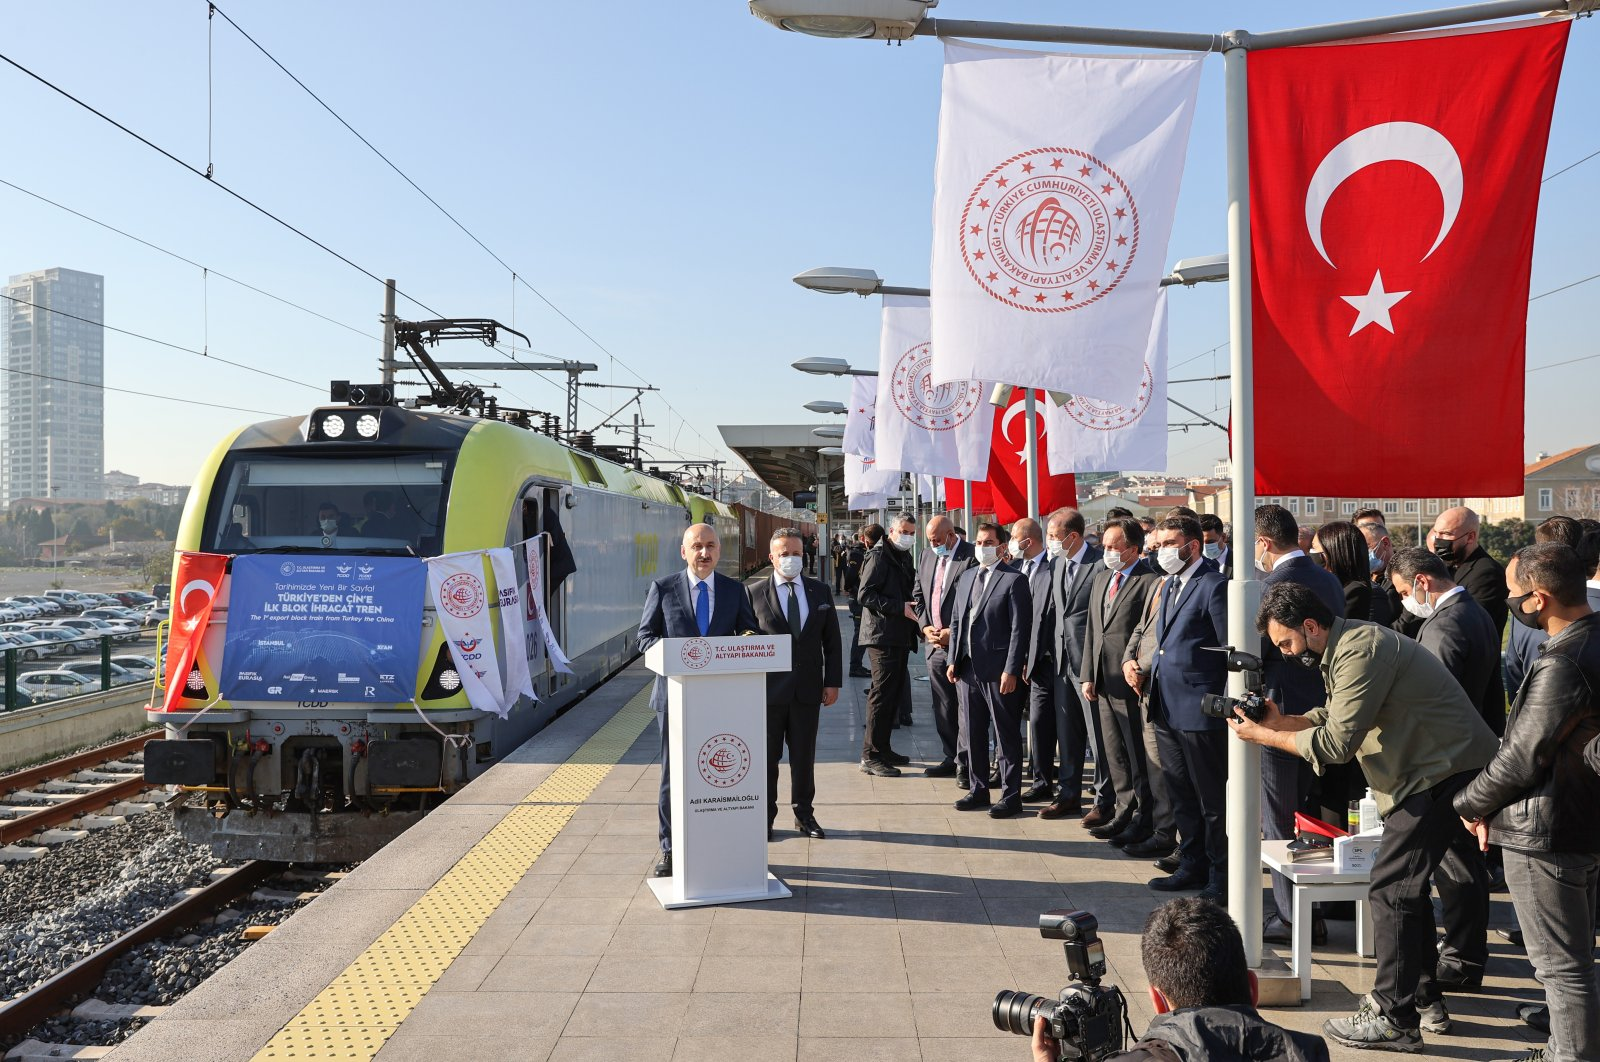 Transport and Infrastructure Minister Adil Karaismailoğlu delivers a speech during a sendoff ceremony for the first train, which will carry goods from Turkey to China, at the Kazlıçeşme station on the European side of Istanbul, Turkey, Dec. 4, 2020. (AA Photo)